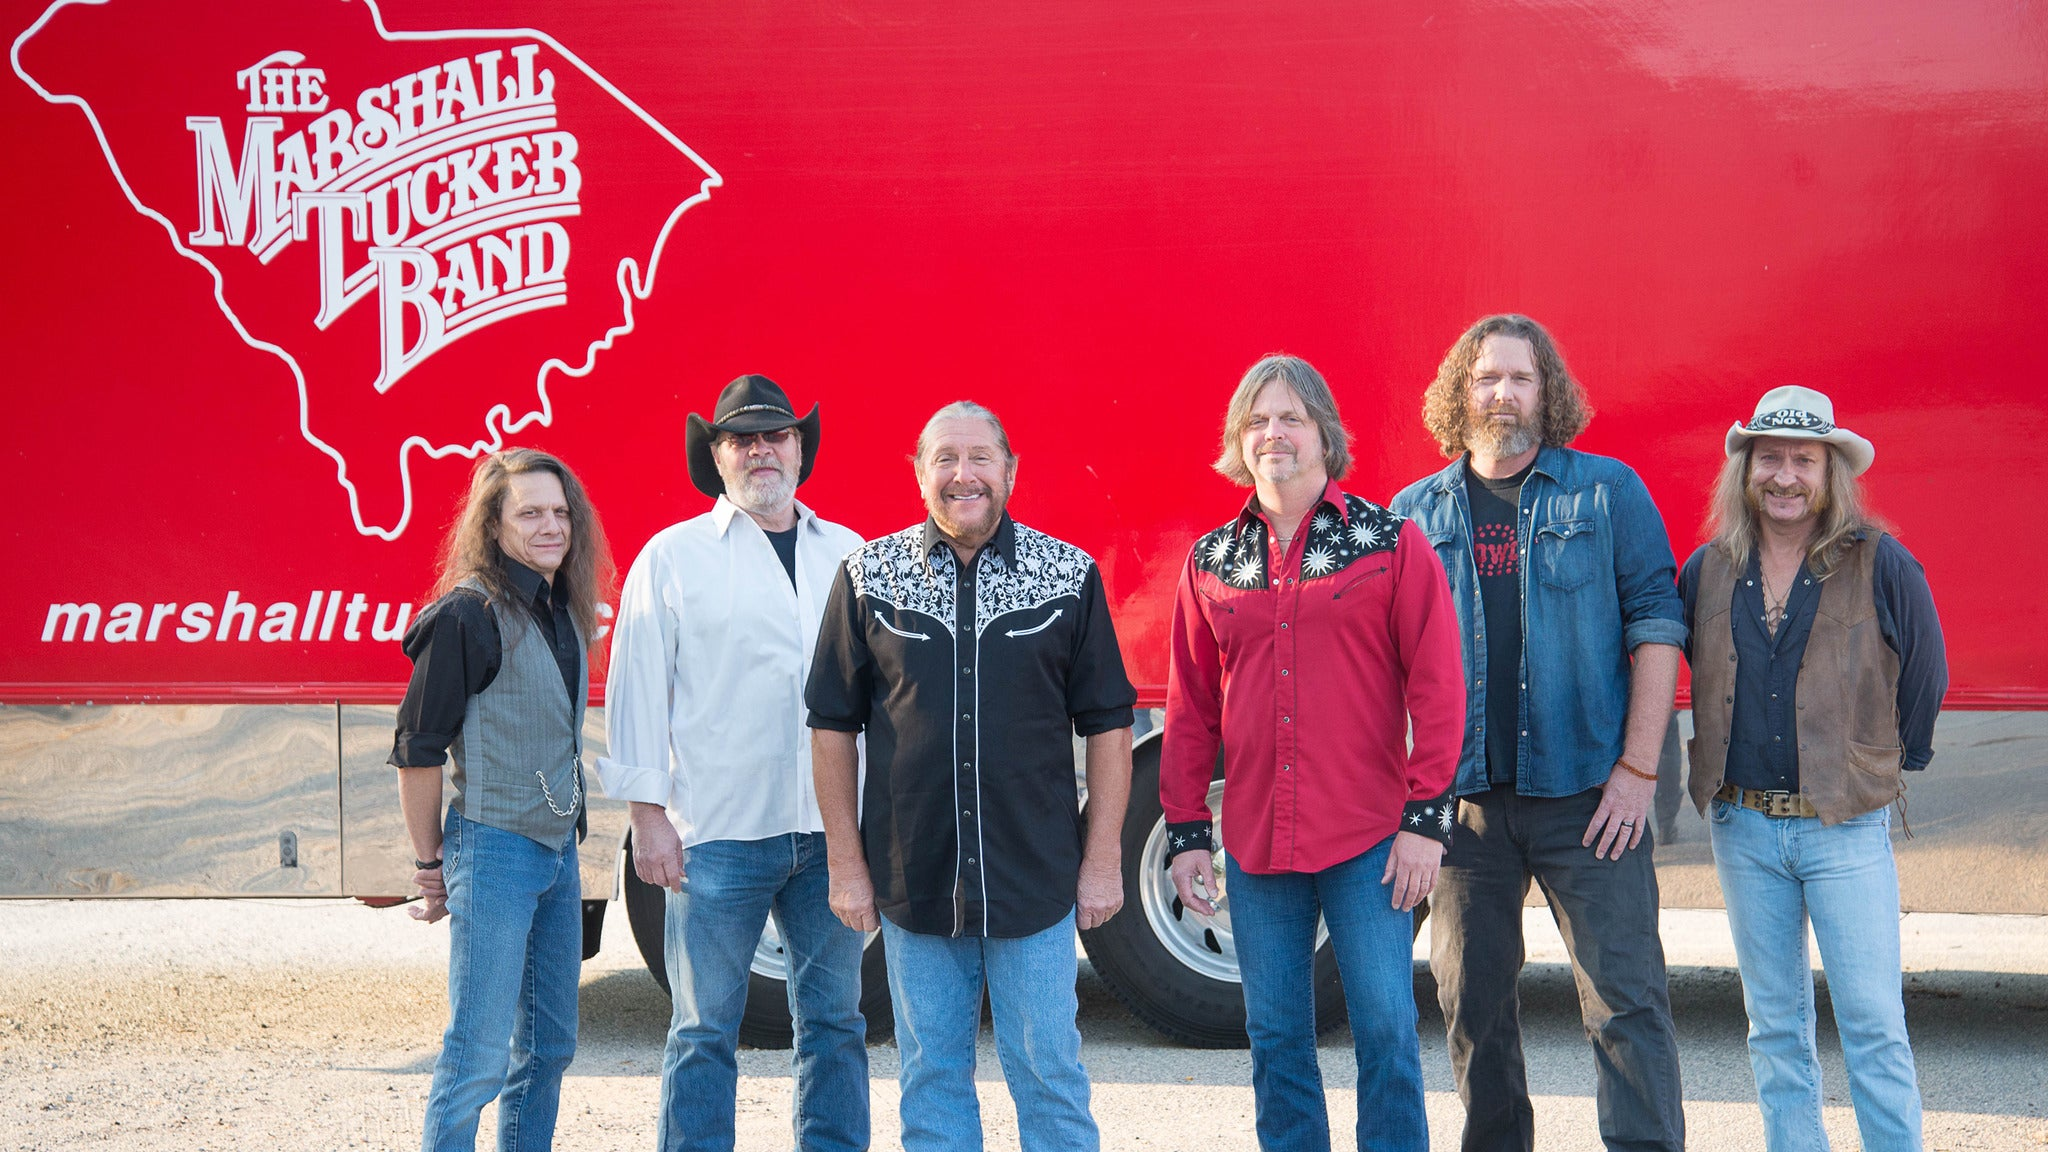 The Marshall Tucker Band at DiamondJacks Casino and Resort